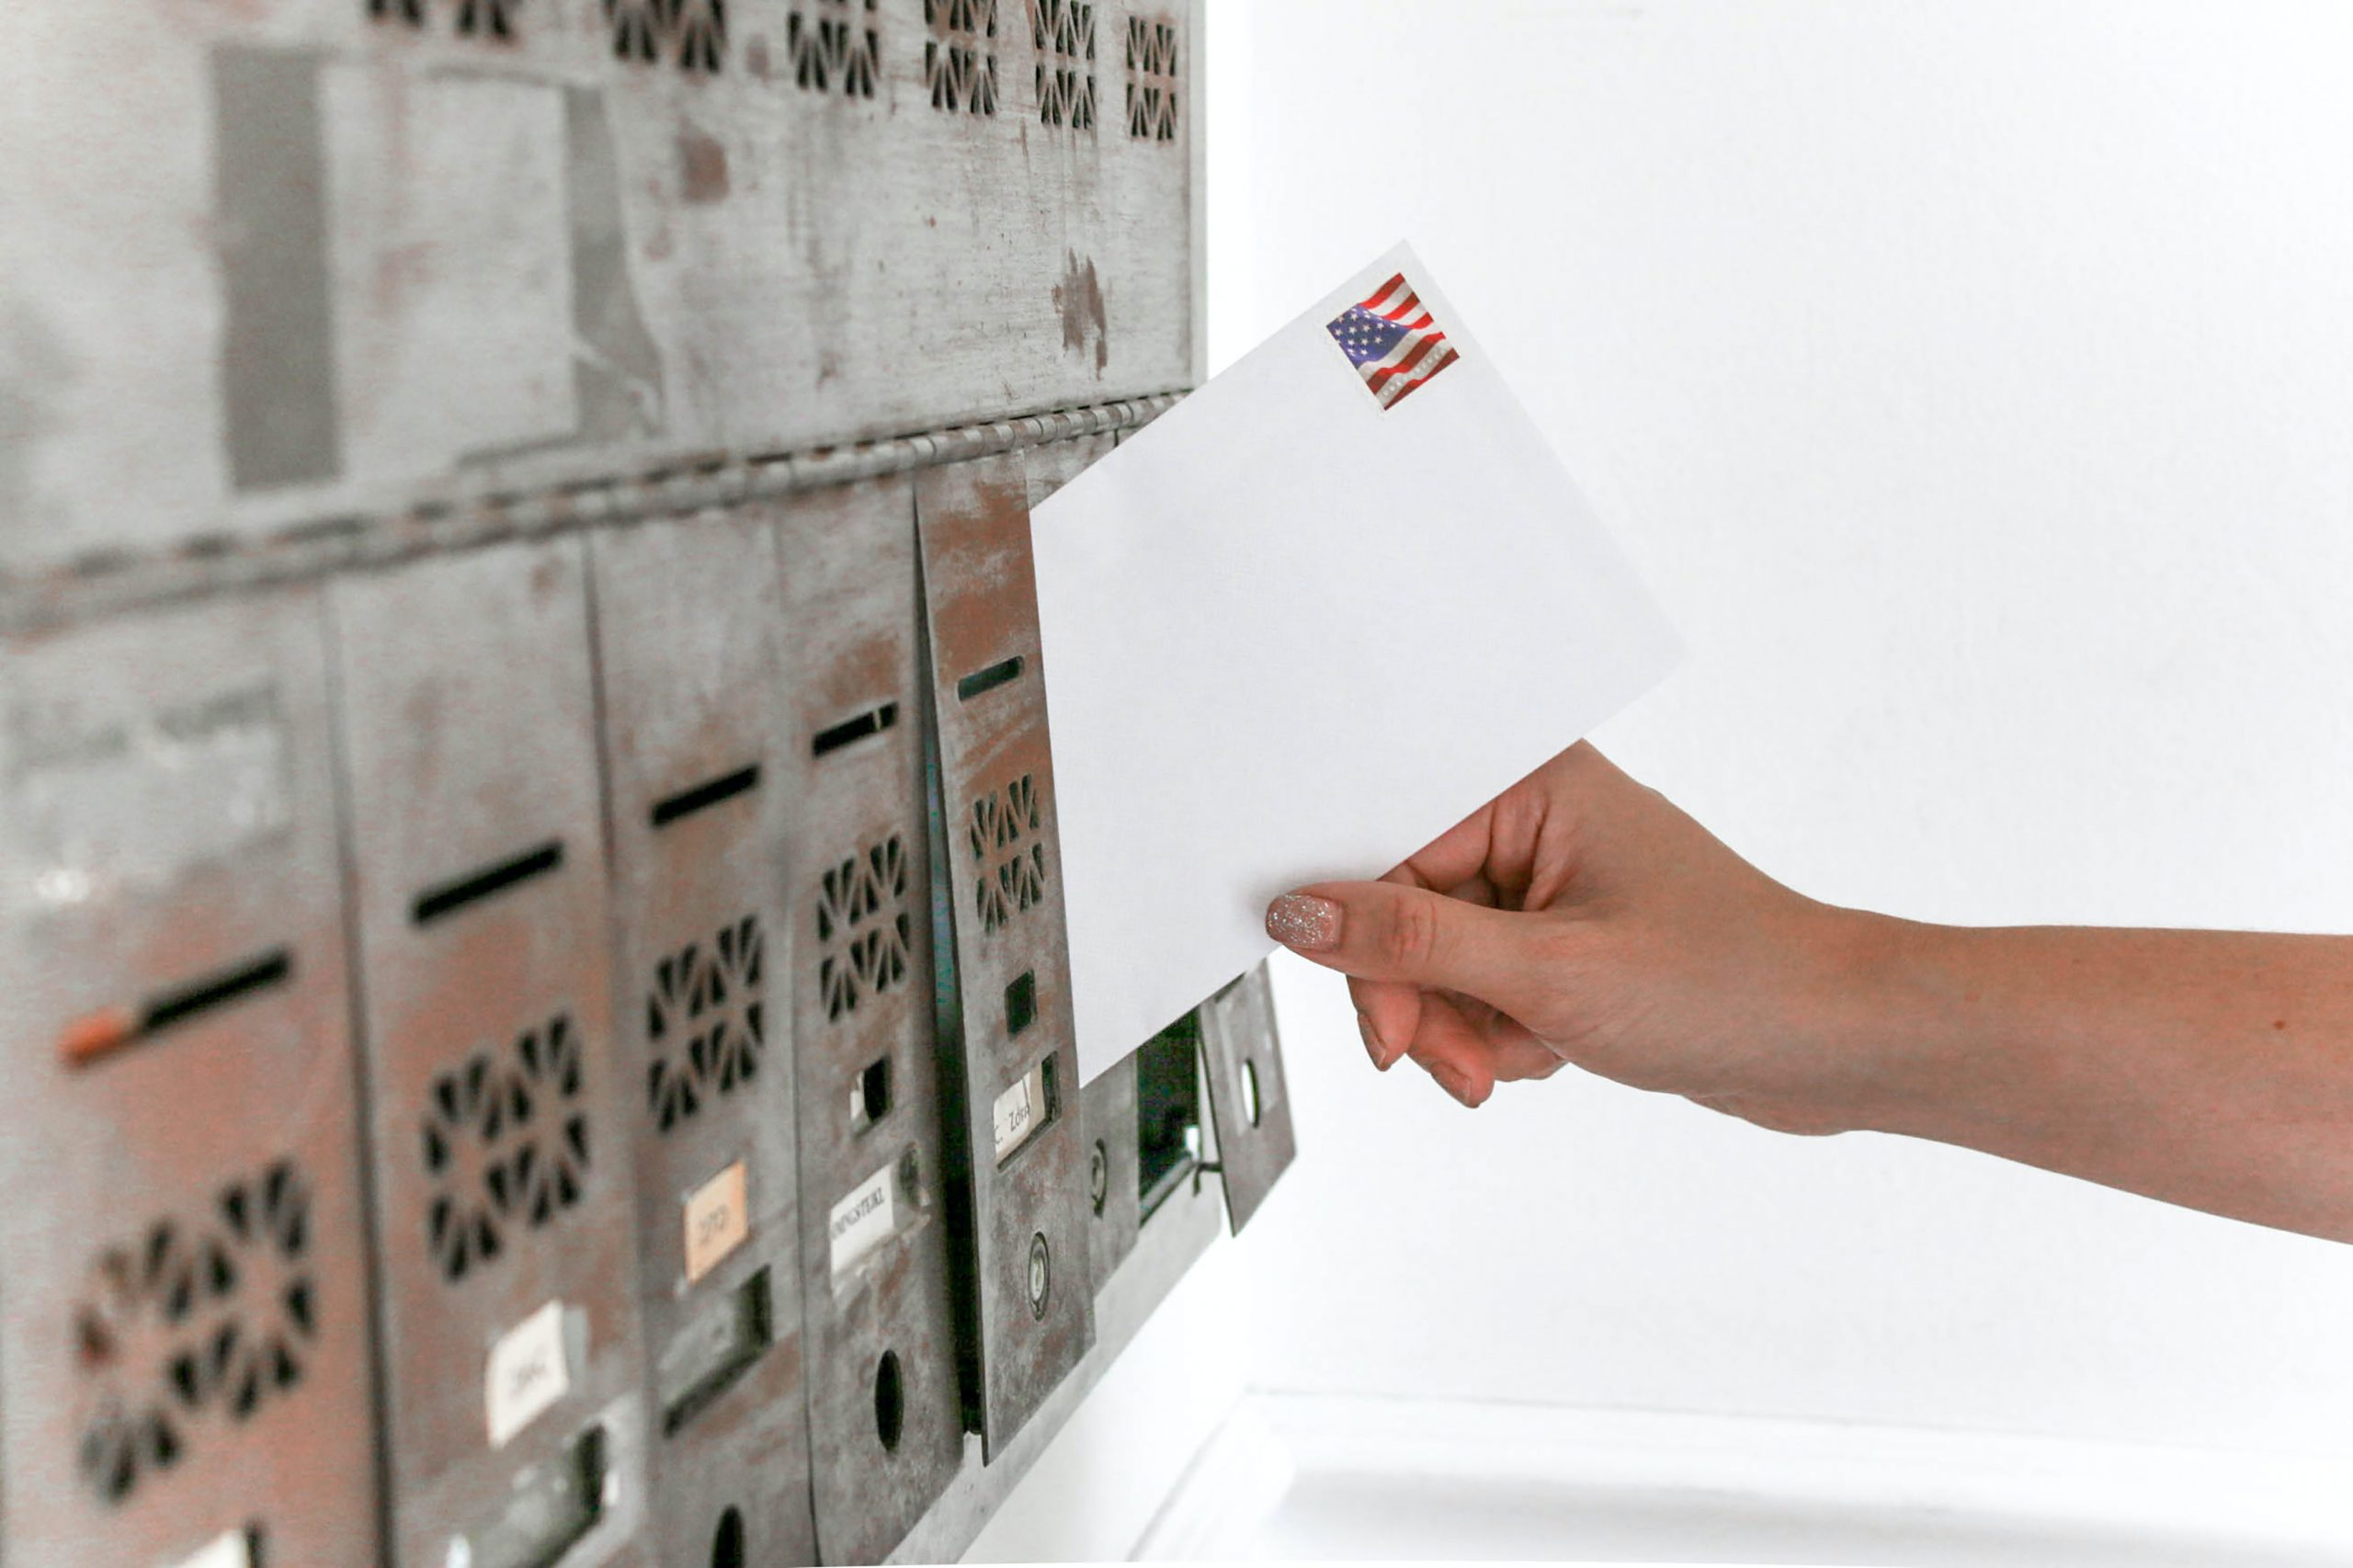 Debunking the Myth of Voter Fraud in Mail Ballots